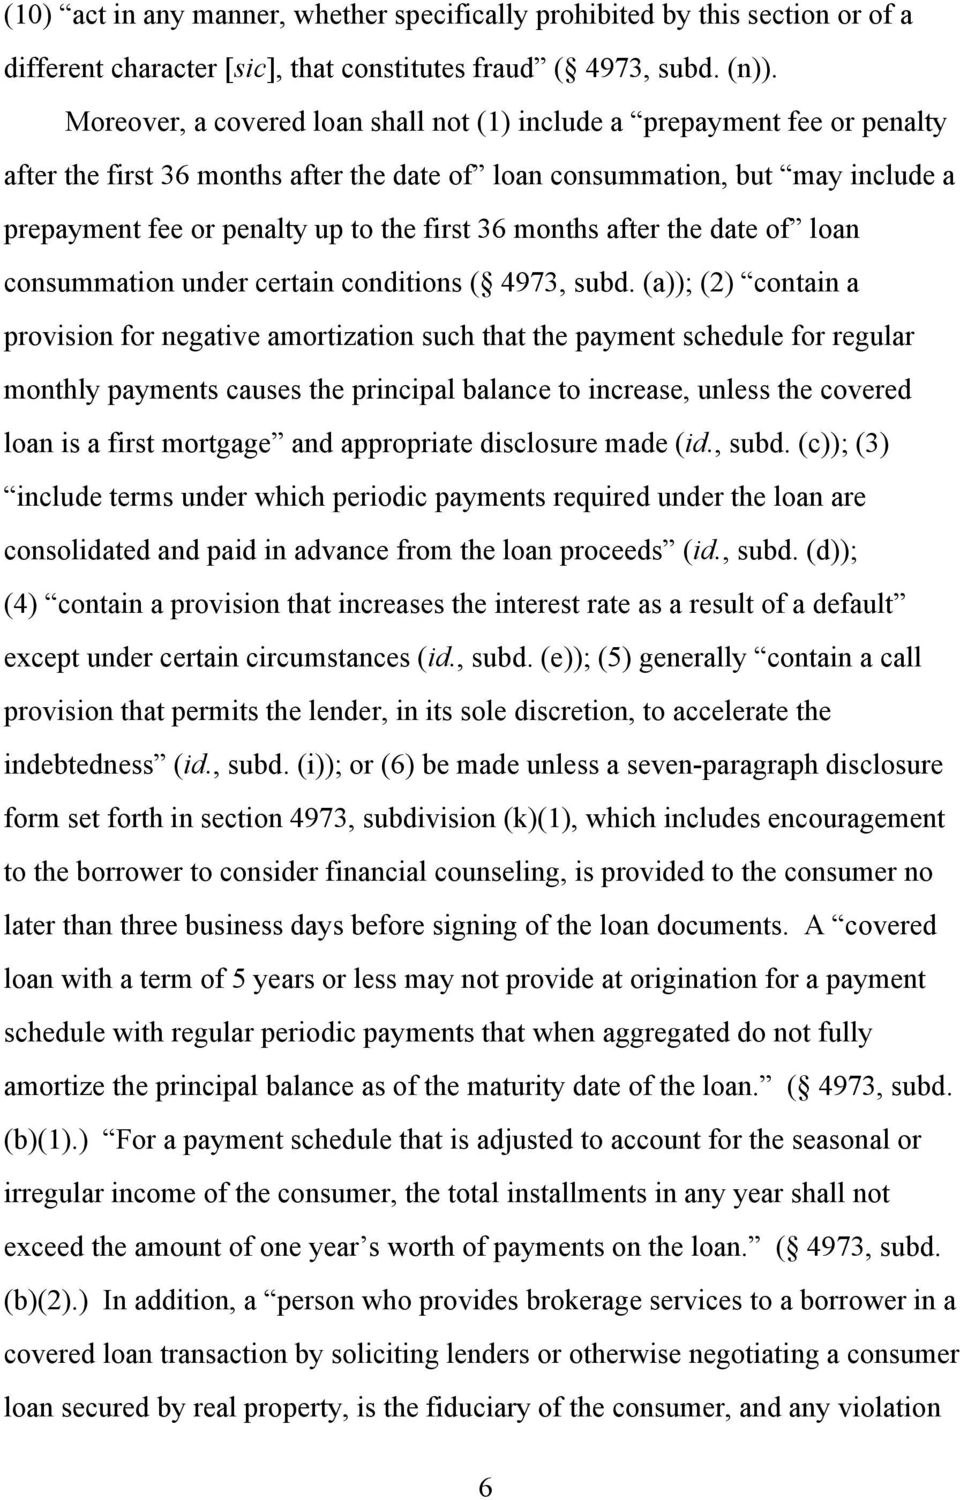 36 months after the date of loan consummation under certain conditions ( 4973, subd.